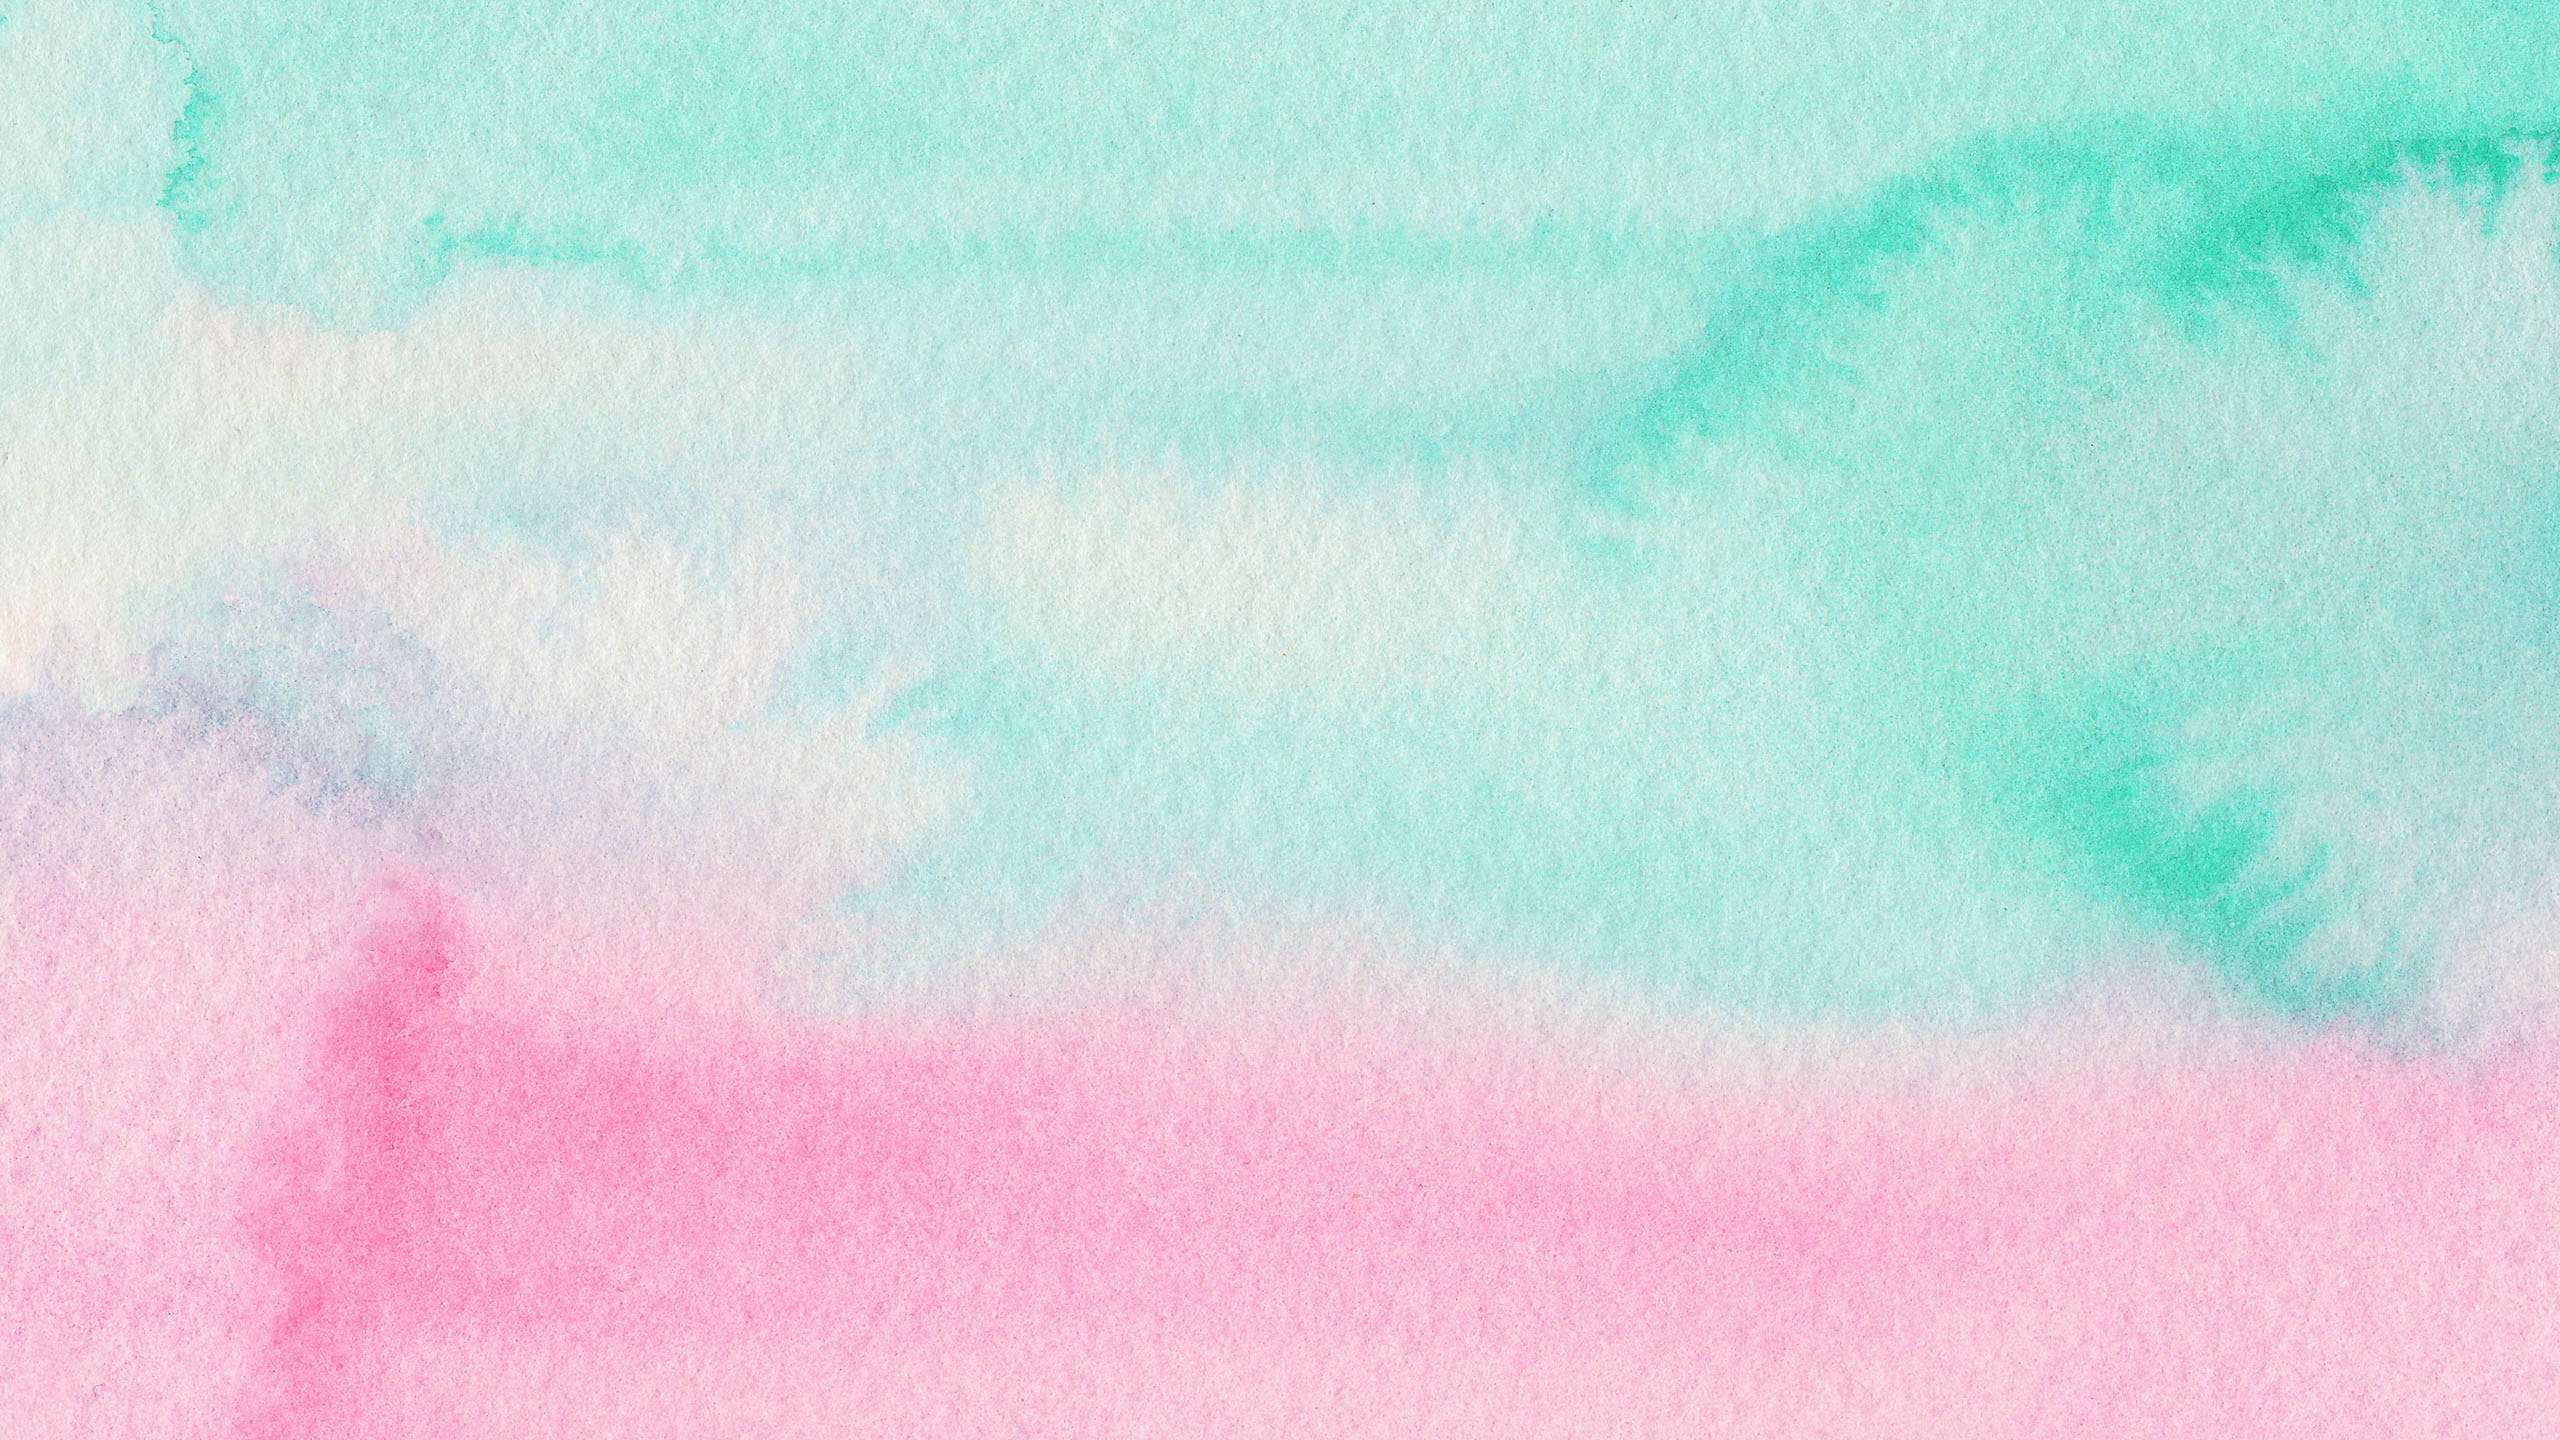 Tumblr Laptop Backgrounds 2560 X 1440